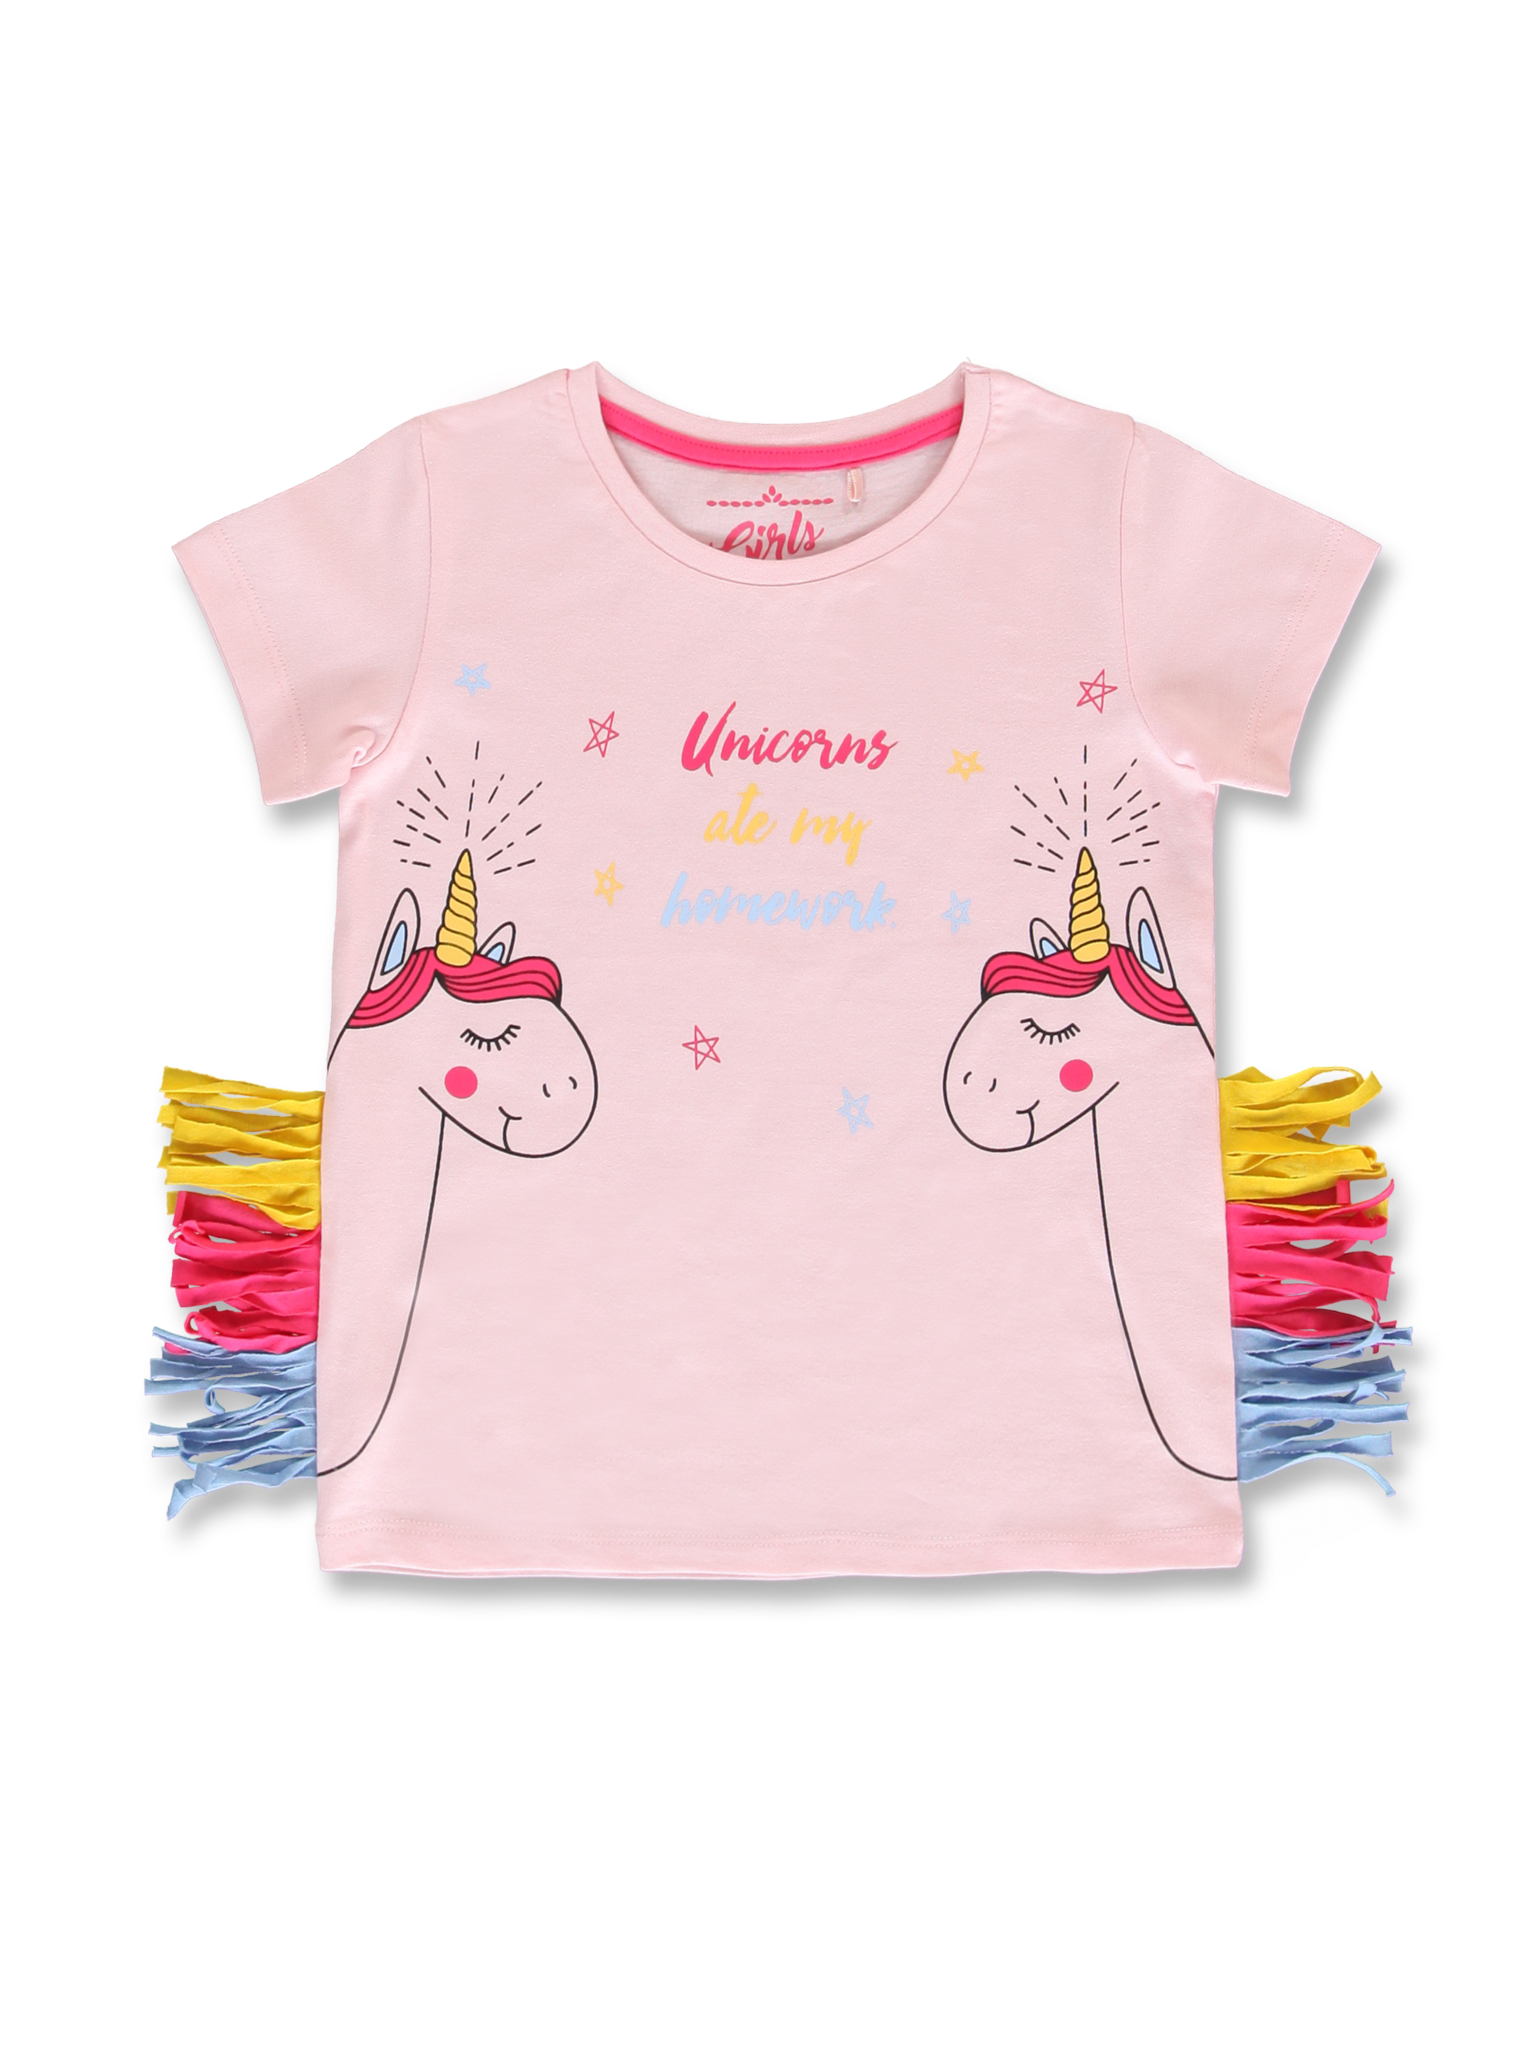 Lemon Beret | Summer 2020 Small Girls | T-shirt | 12 pcs/box